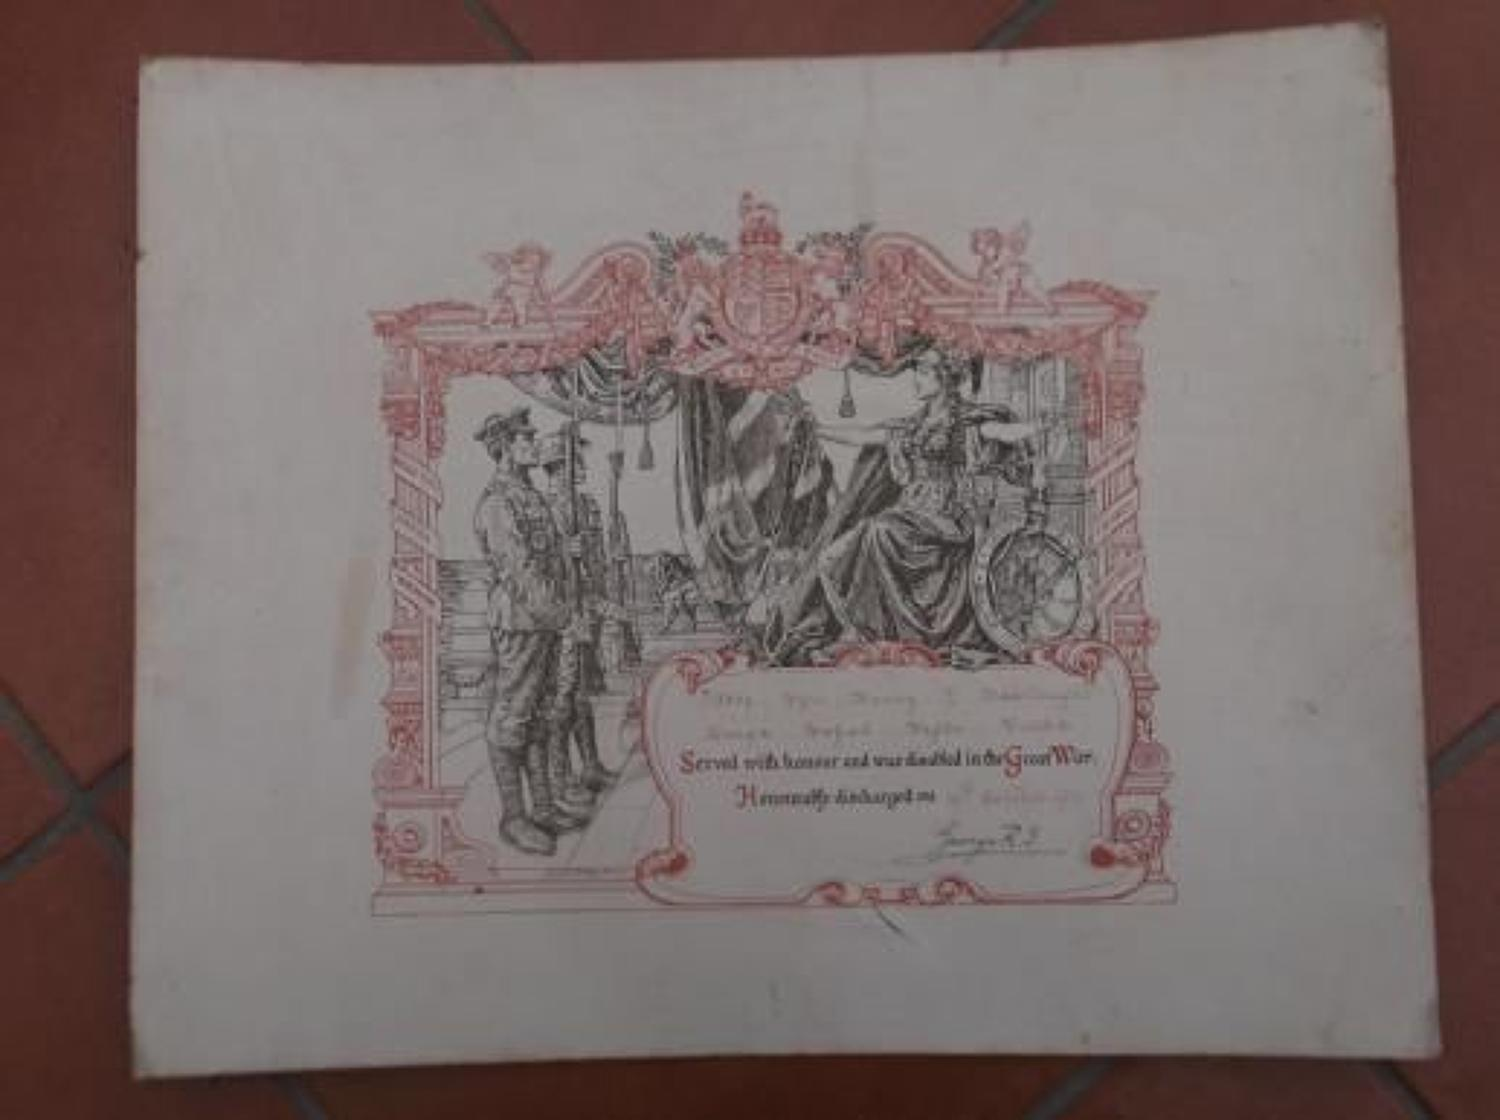 WW1 DISCHARGE CERTIFICATE: KINGS ROYAL RIFLE CORPS